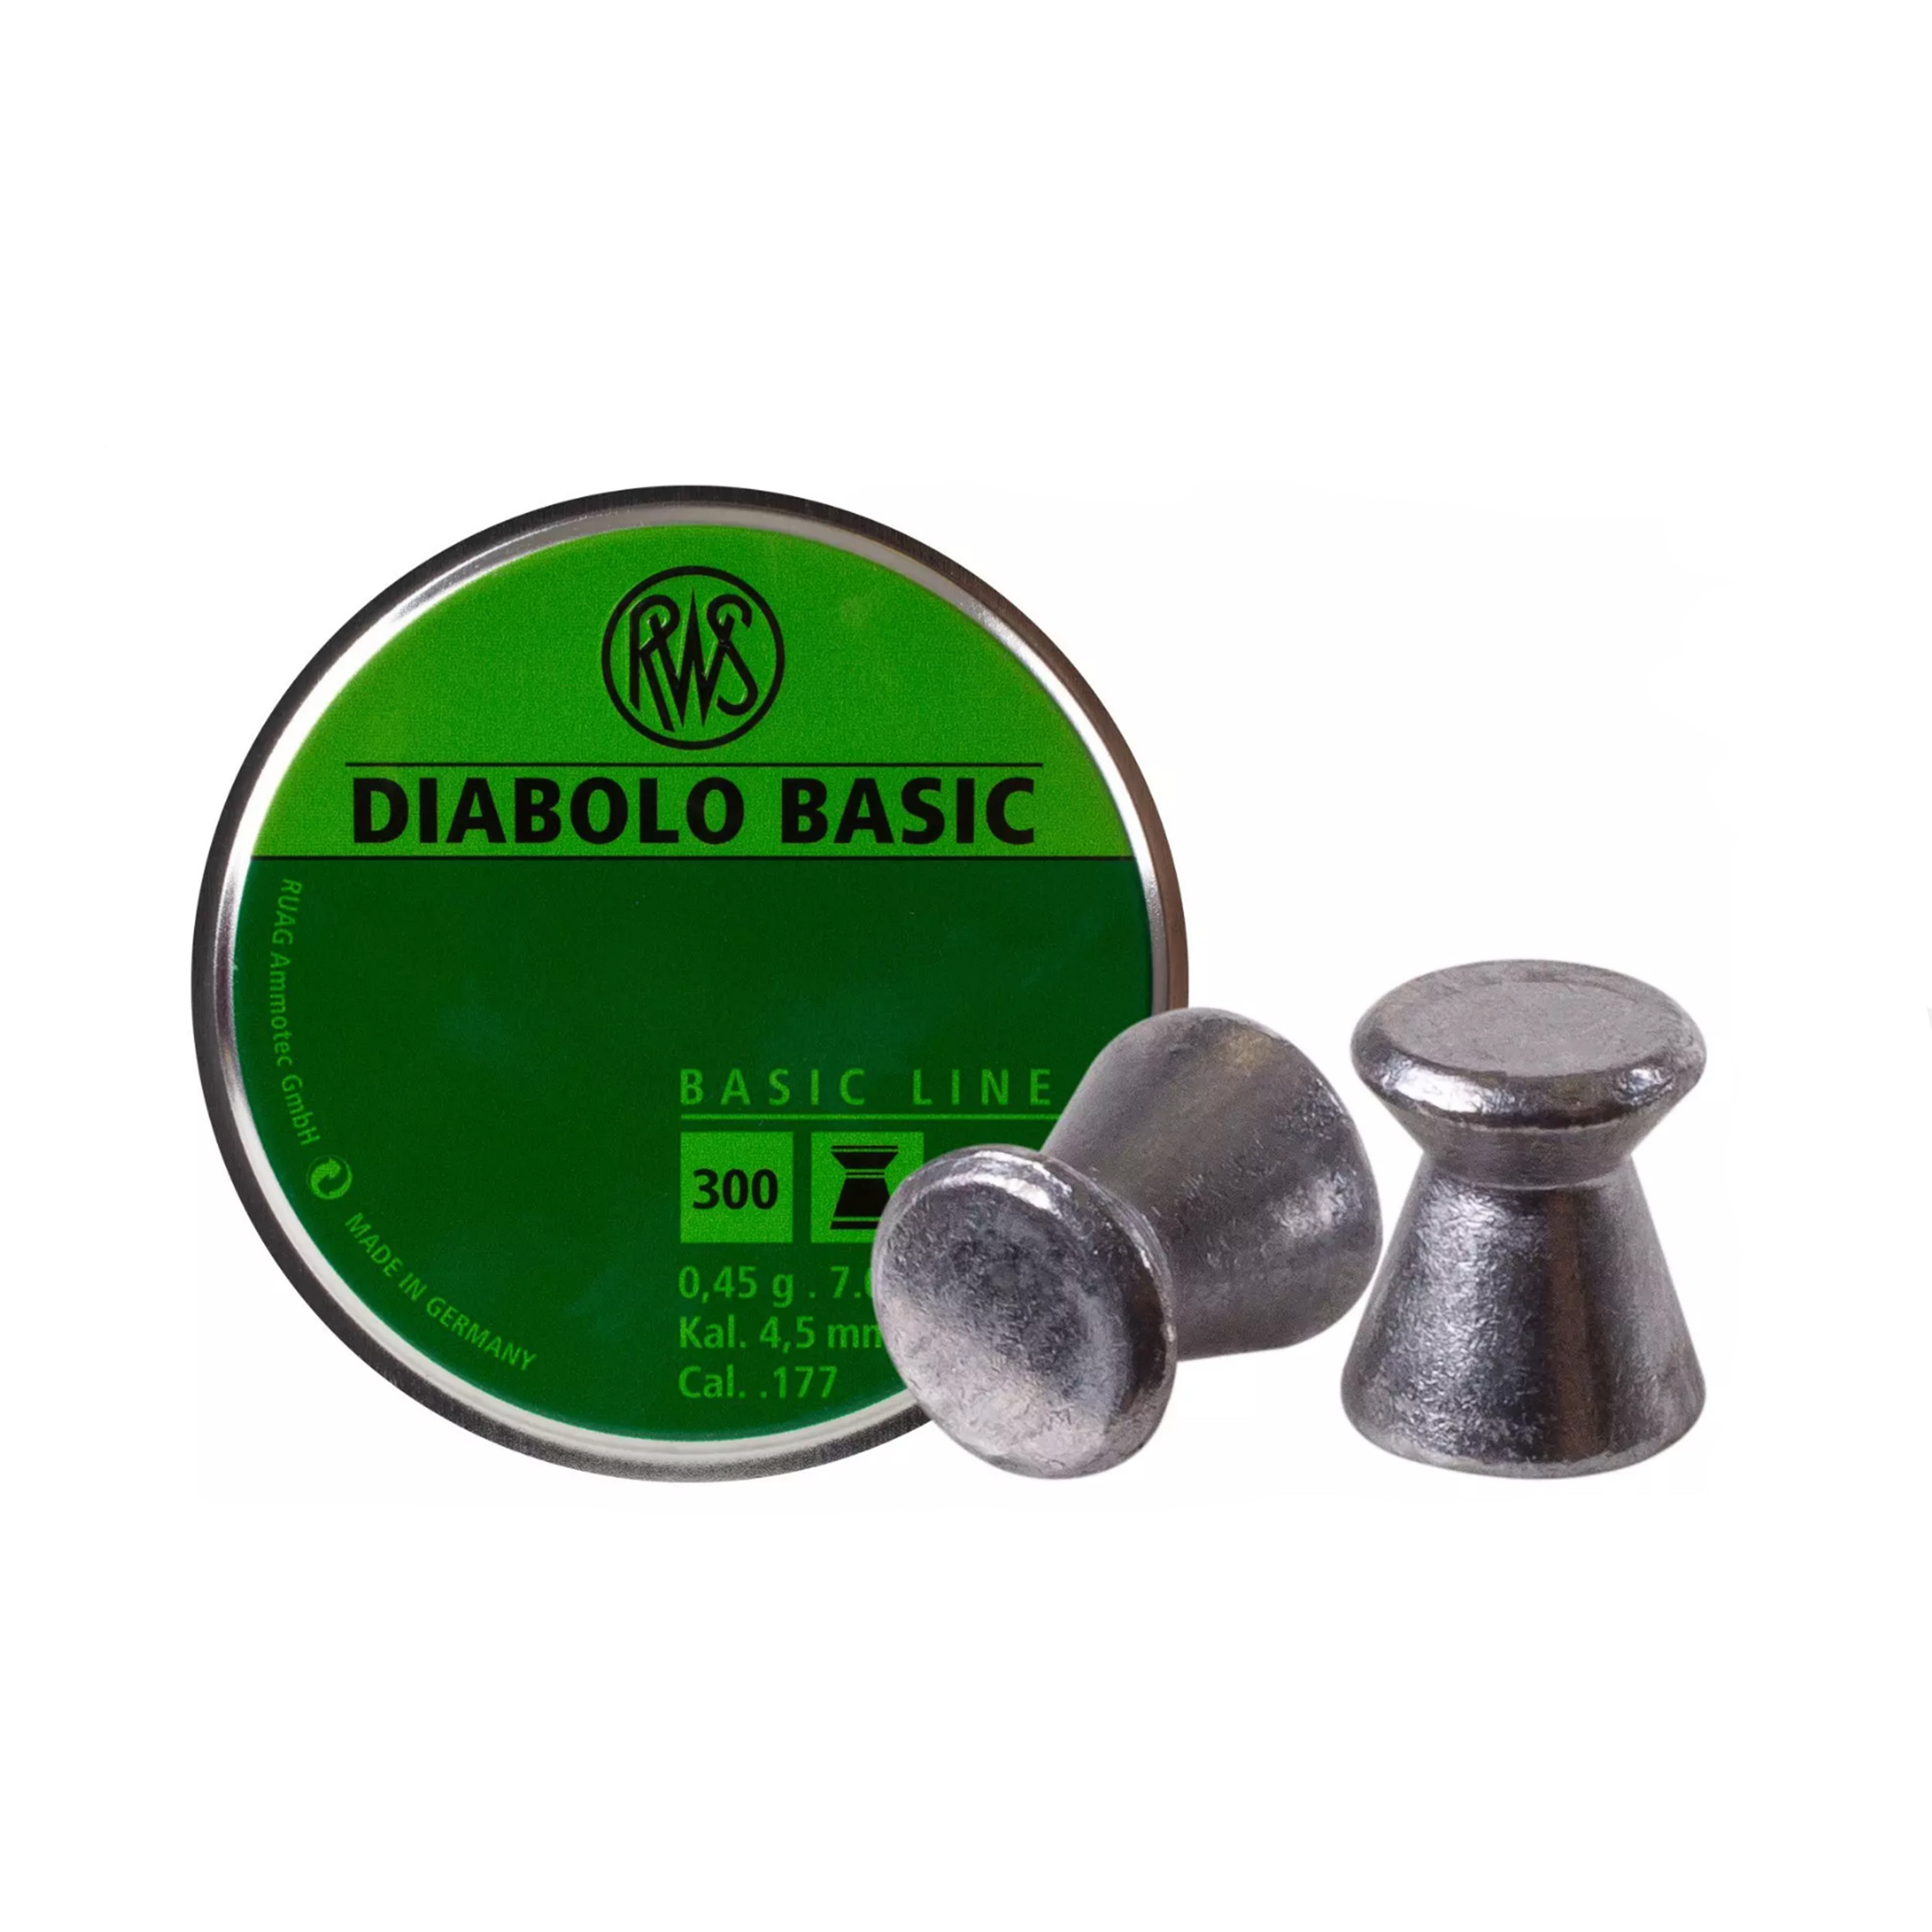 RWS Diabolo Basic .177 Cal Pellet 7 Grains Wadcutter Lead 300ct